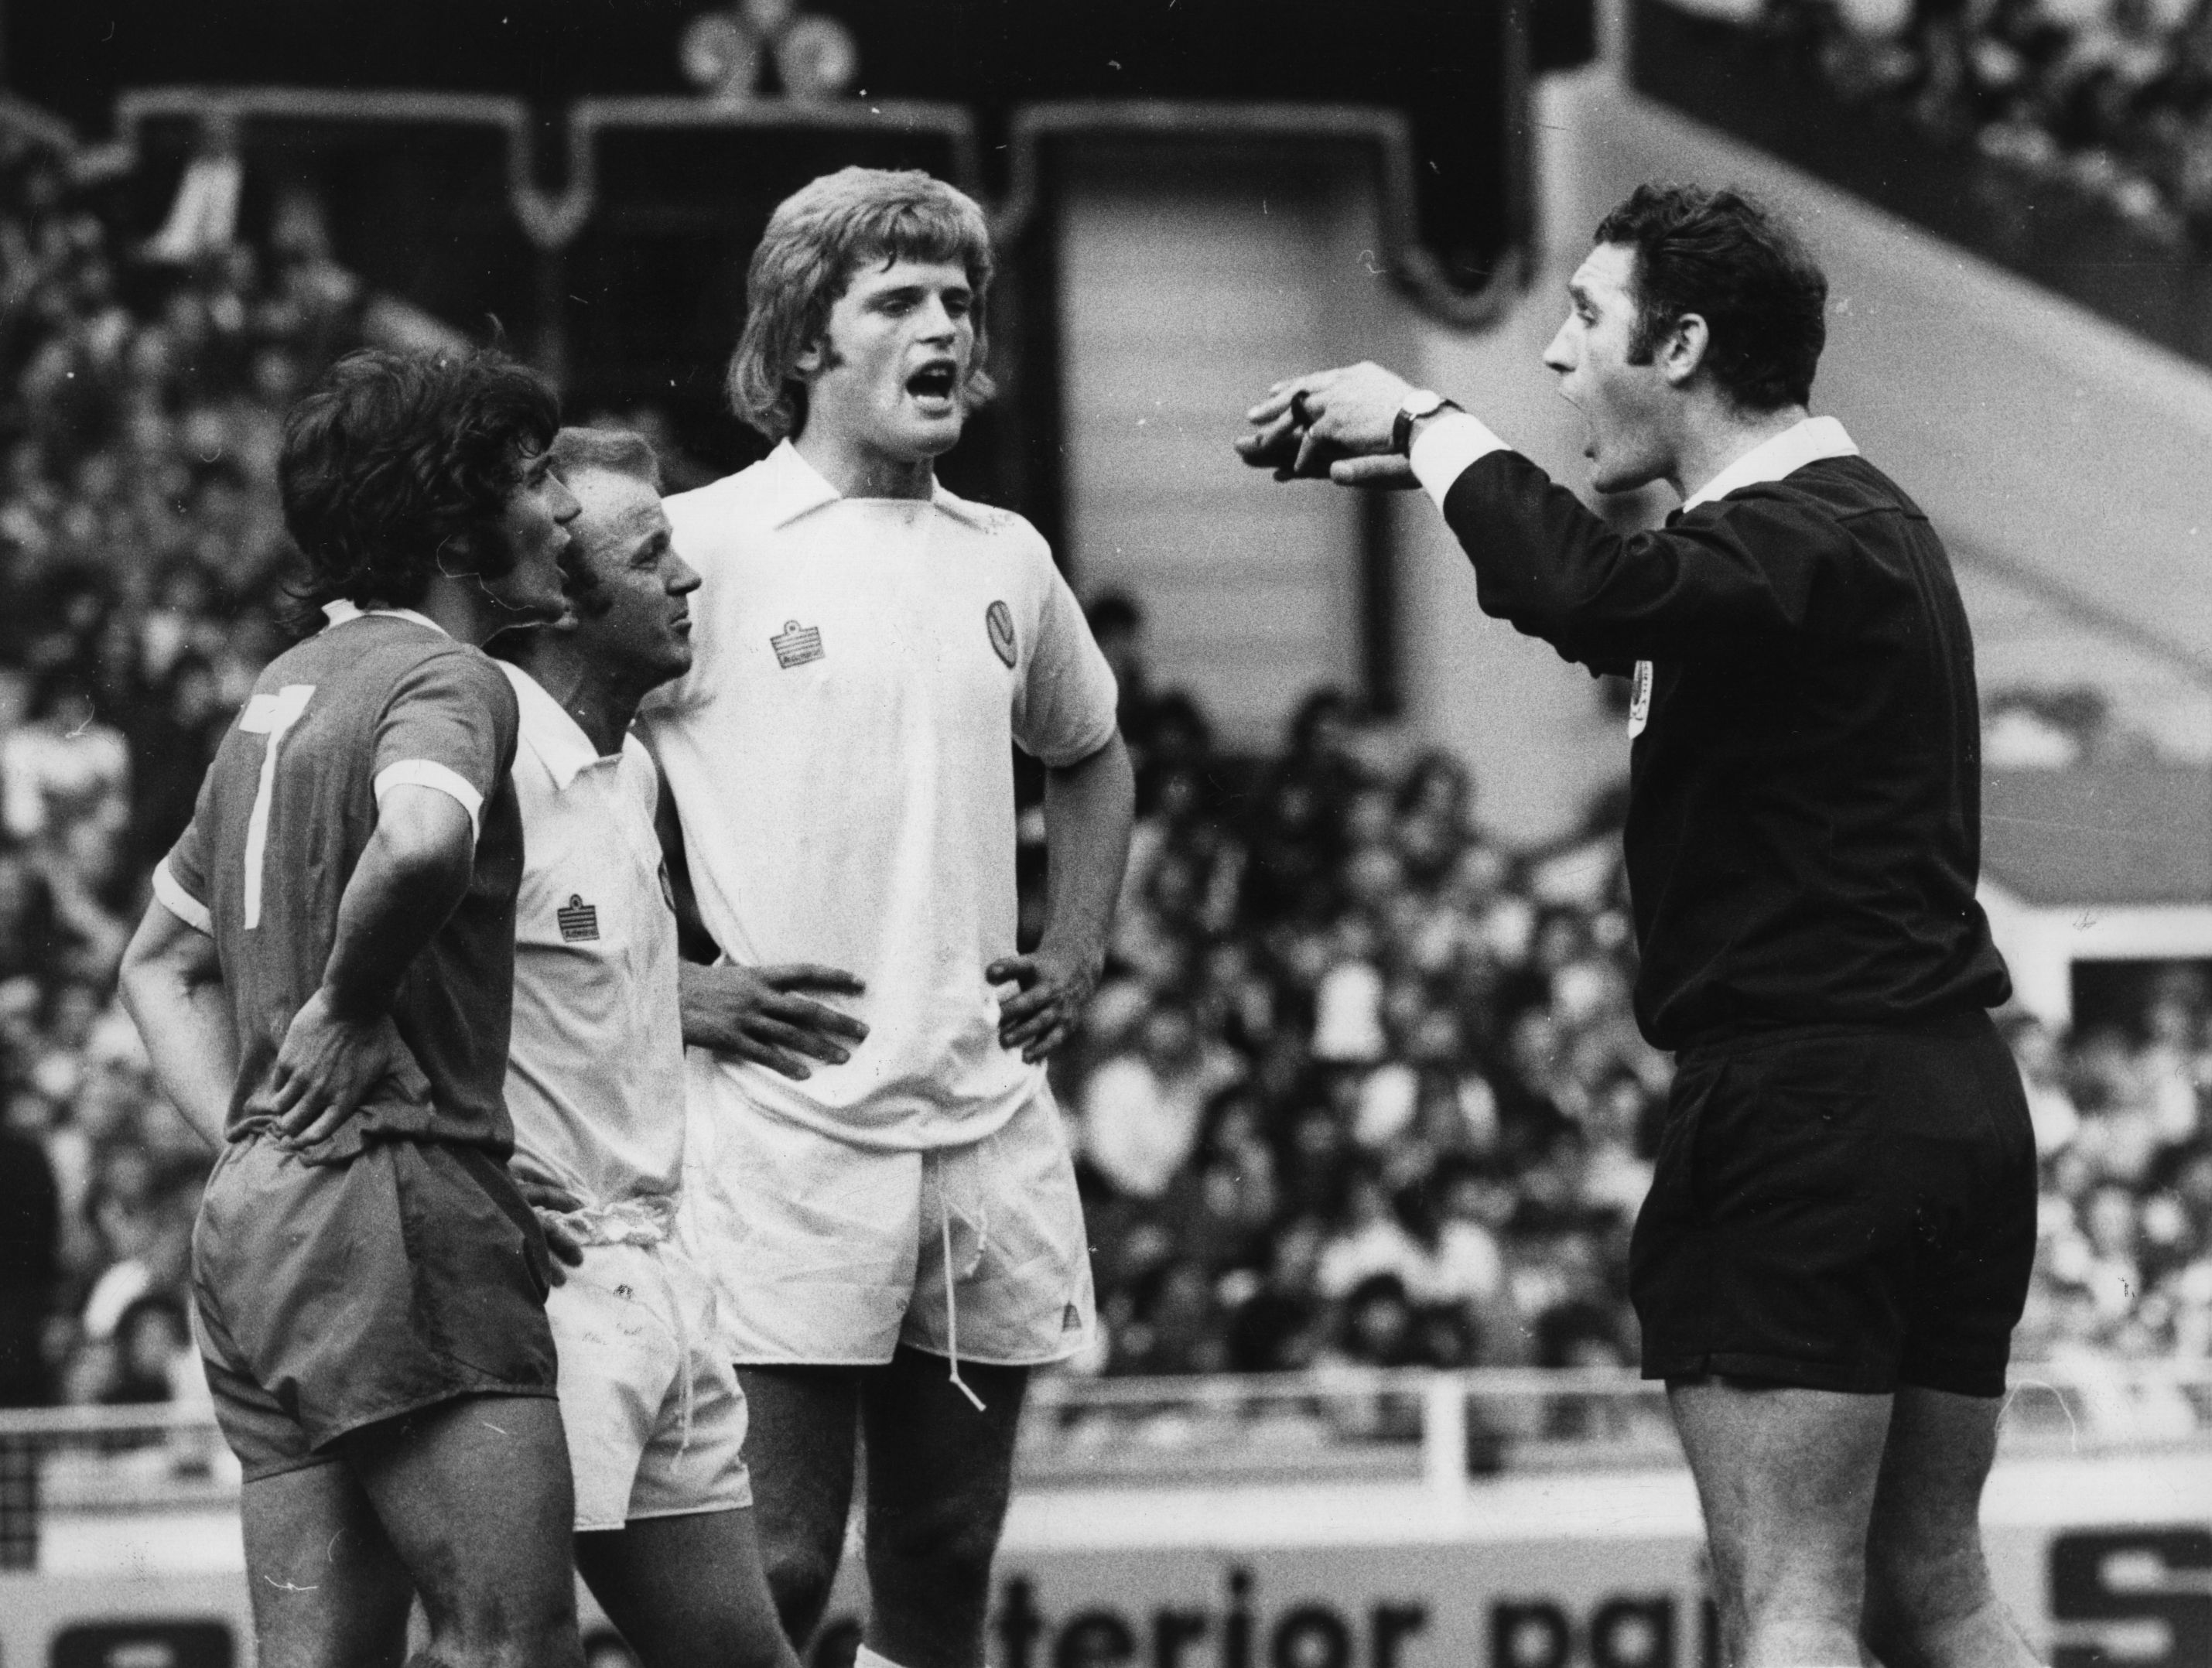 10th August 1974: Gordon McQueen (centre) of Leeds United FC watches as referee R Matthenson sends off Kevin Keegan from Liverpool FC and Billy Bremner (1942 -1997) of Leeds United FC for trading punches during a testy Charity Shield match at Wembley. (Photo by Evening Standard/Getty Images)